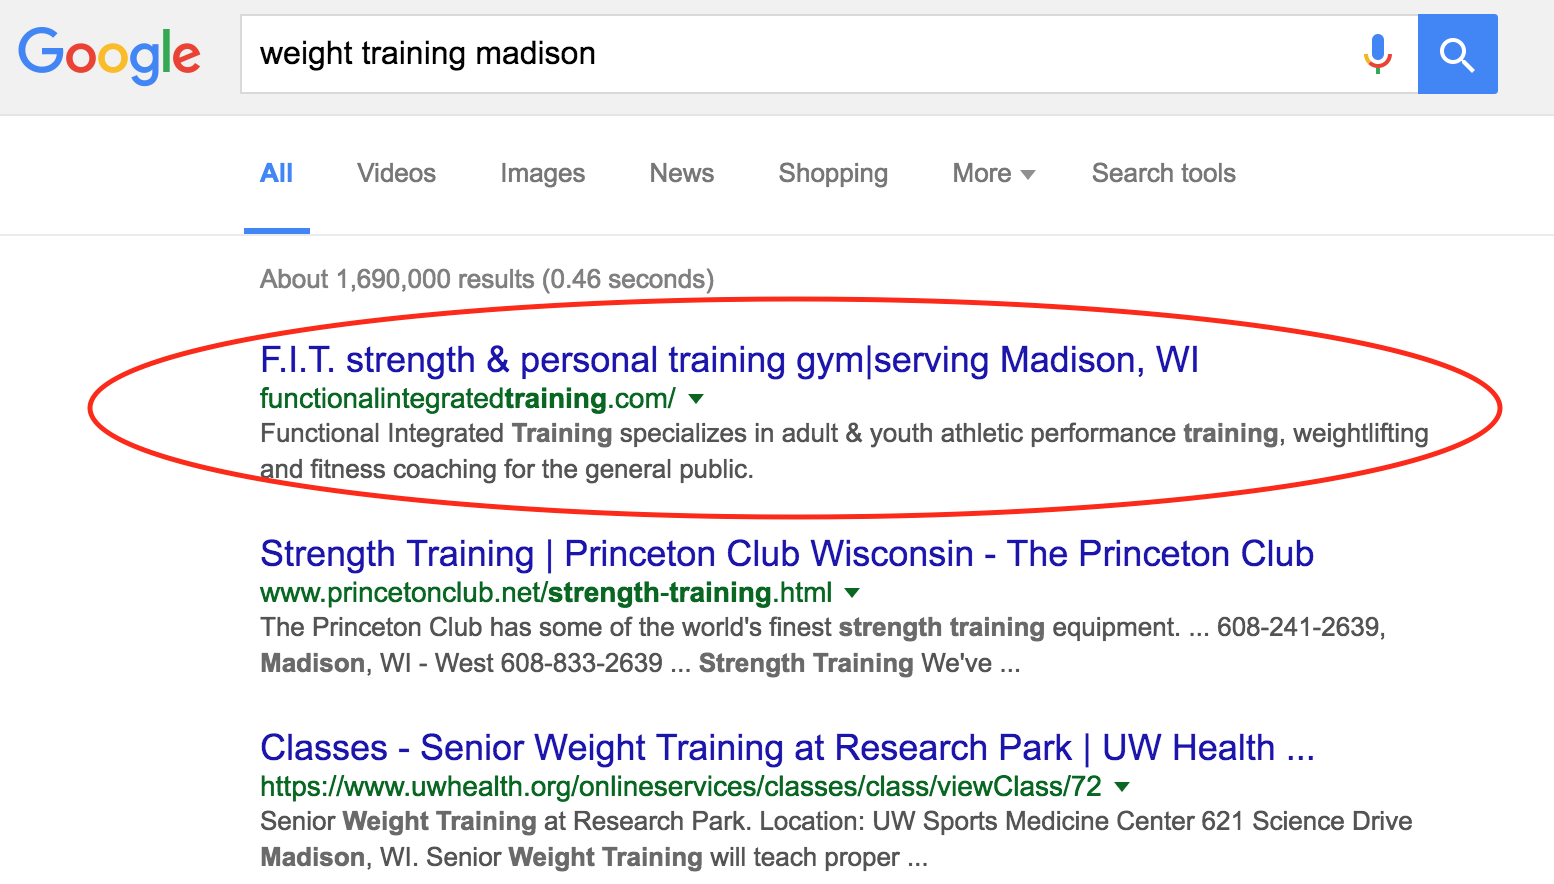 weight training Madison SEO result number 1